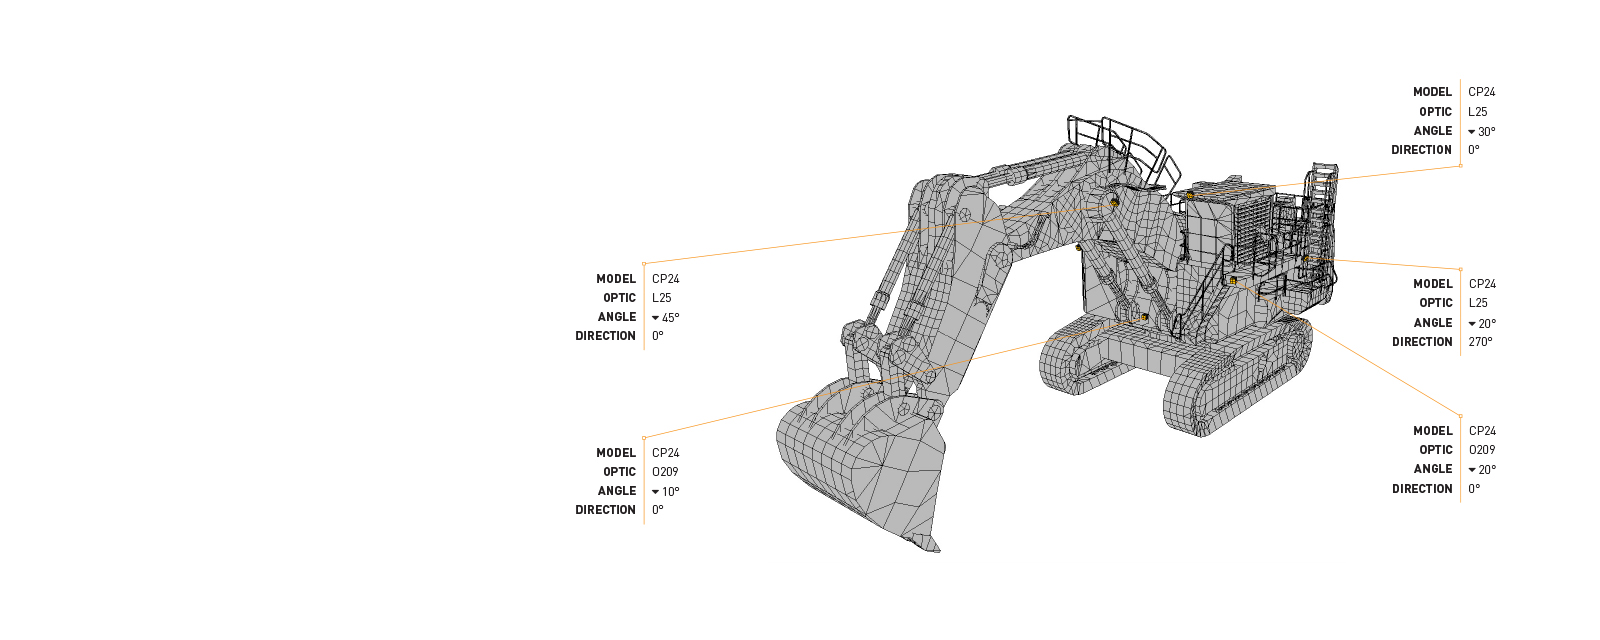 This Lighting Design Simulation Report was made by Coolon to highlight how CP24 LED Floodlight improves the light output of a Liebherr R9400 mining excavator